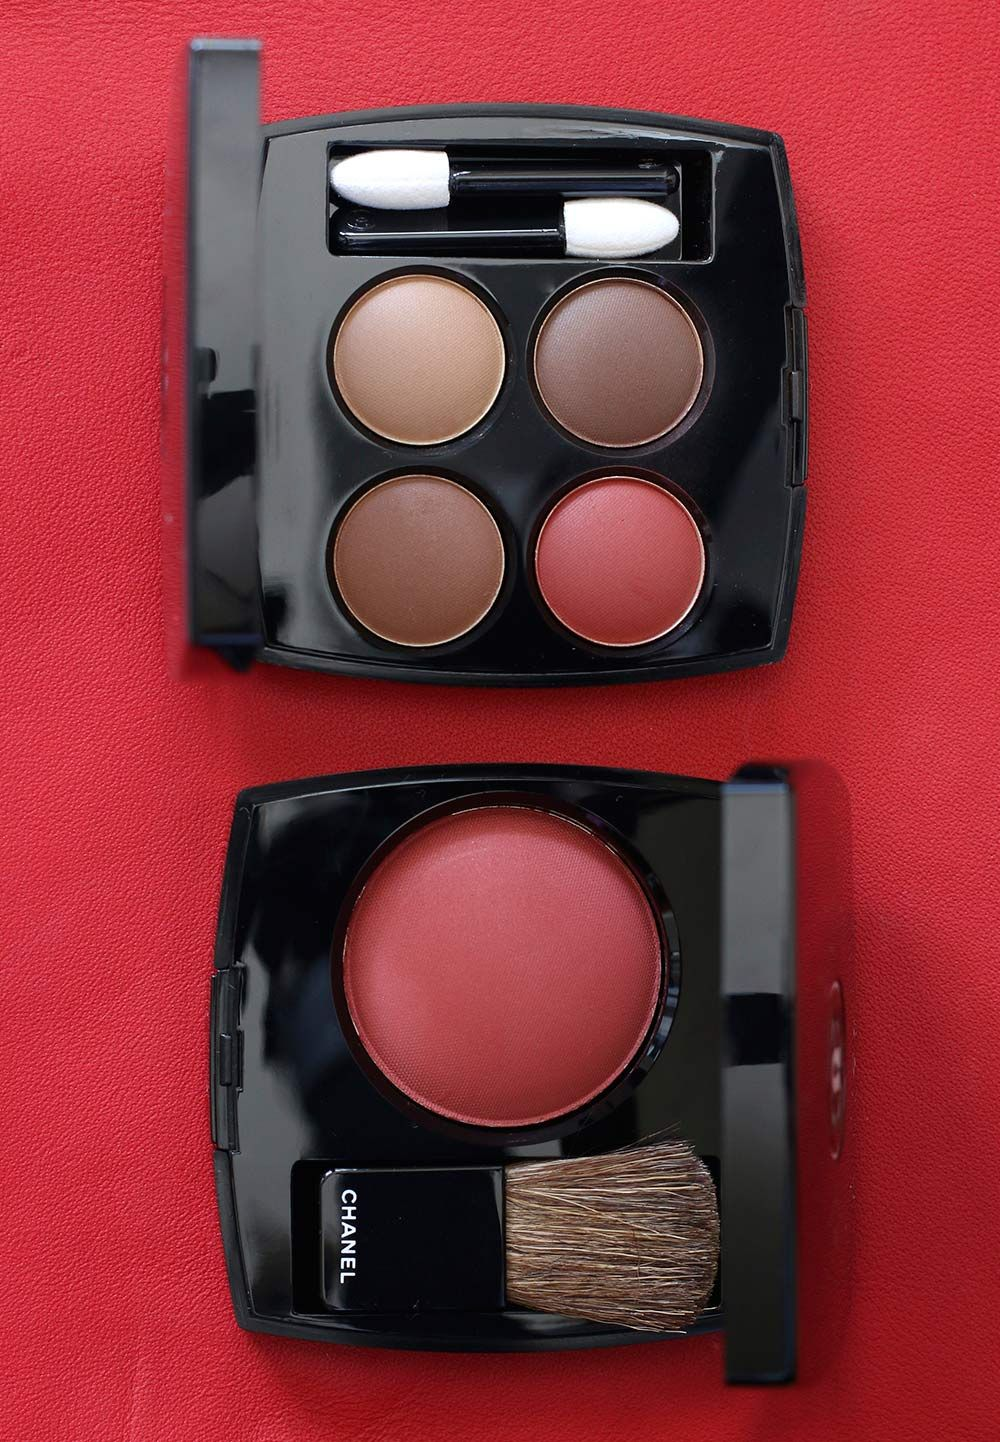 One Word RED! Chanel Le Rouge Collection No. 1 Makeup